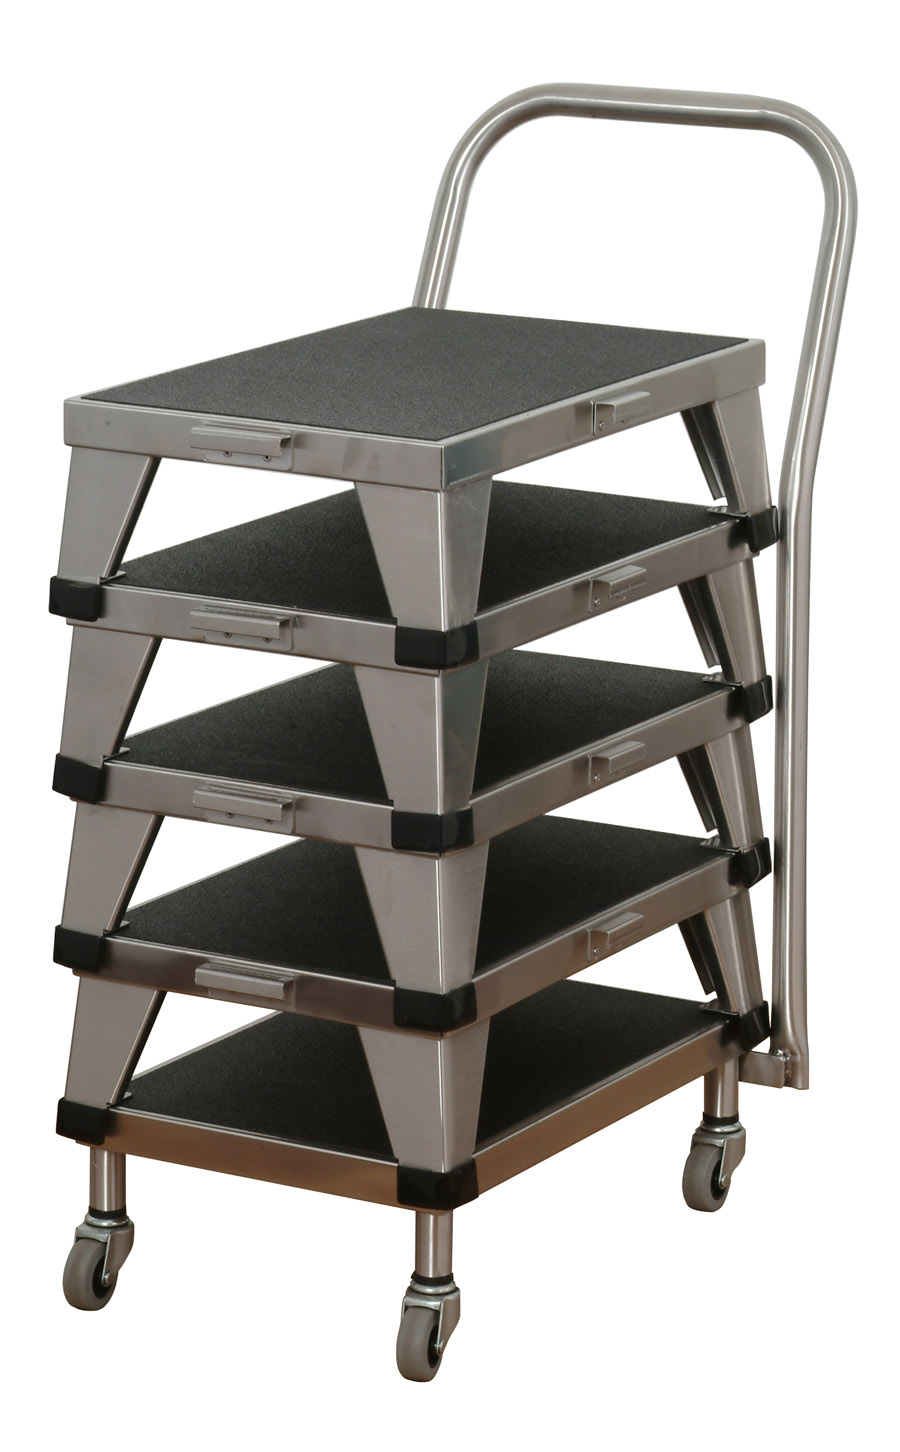 8380 Stainless Steel Foot Stools on 8381 Transport Cart